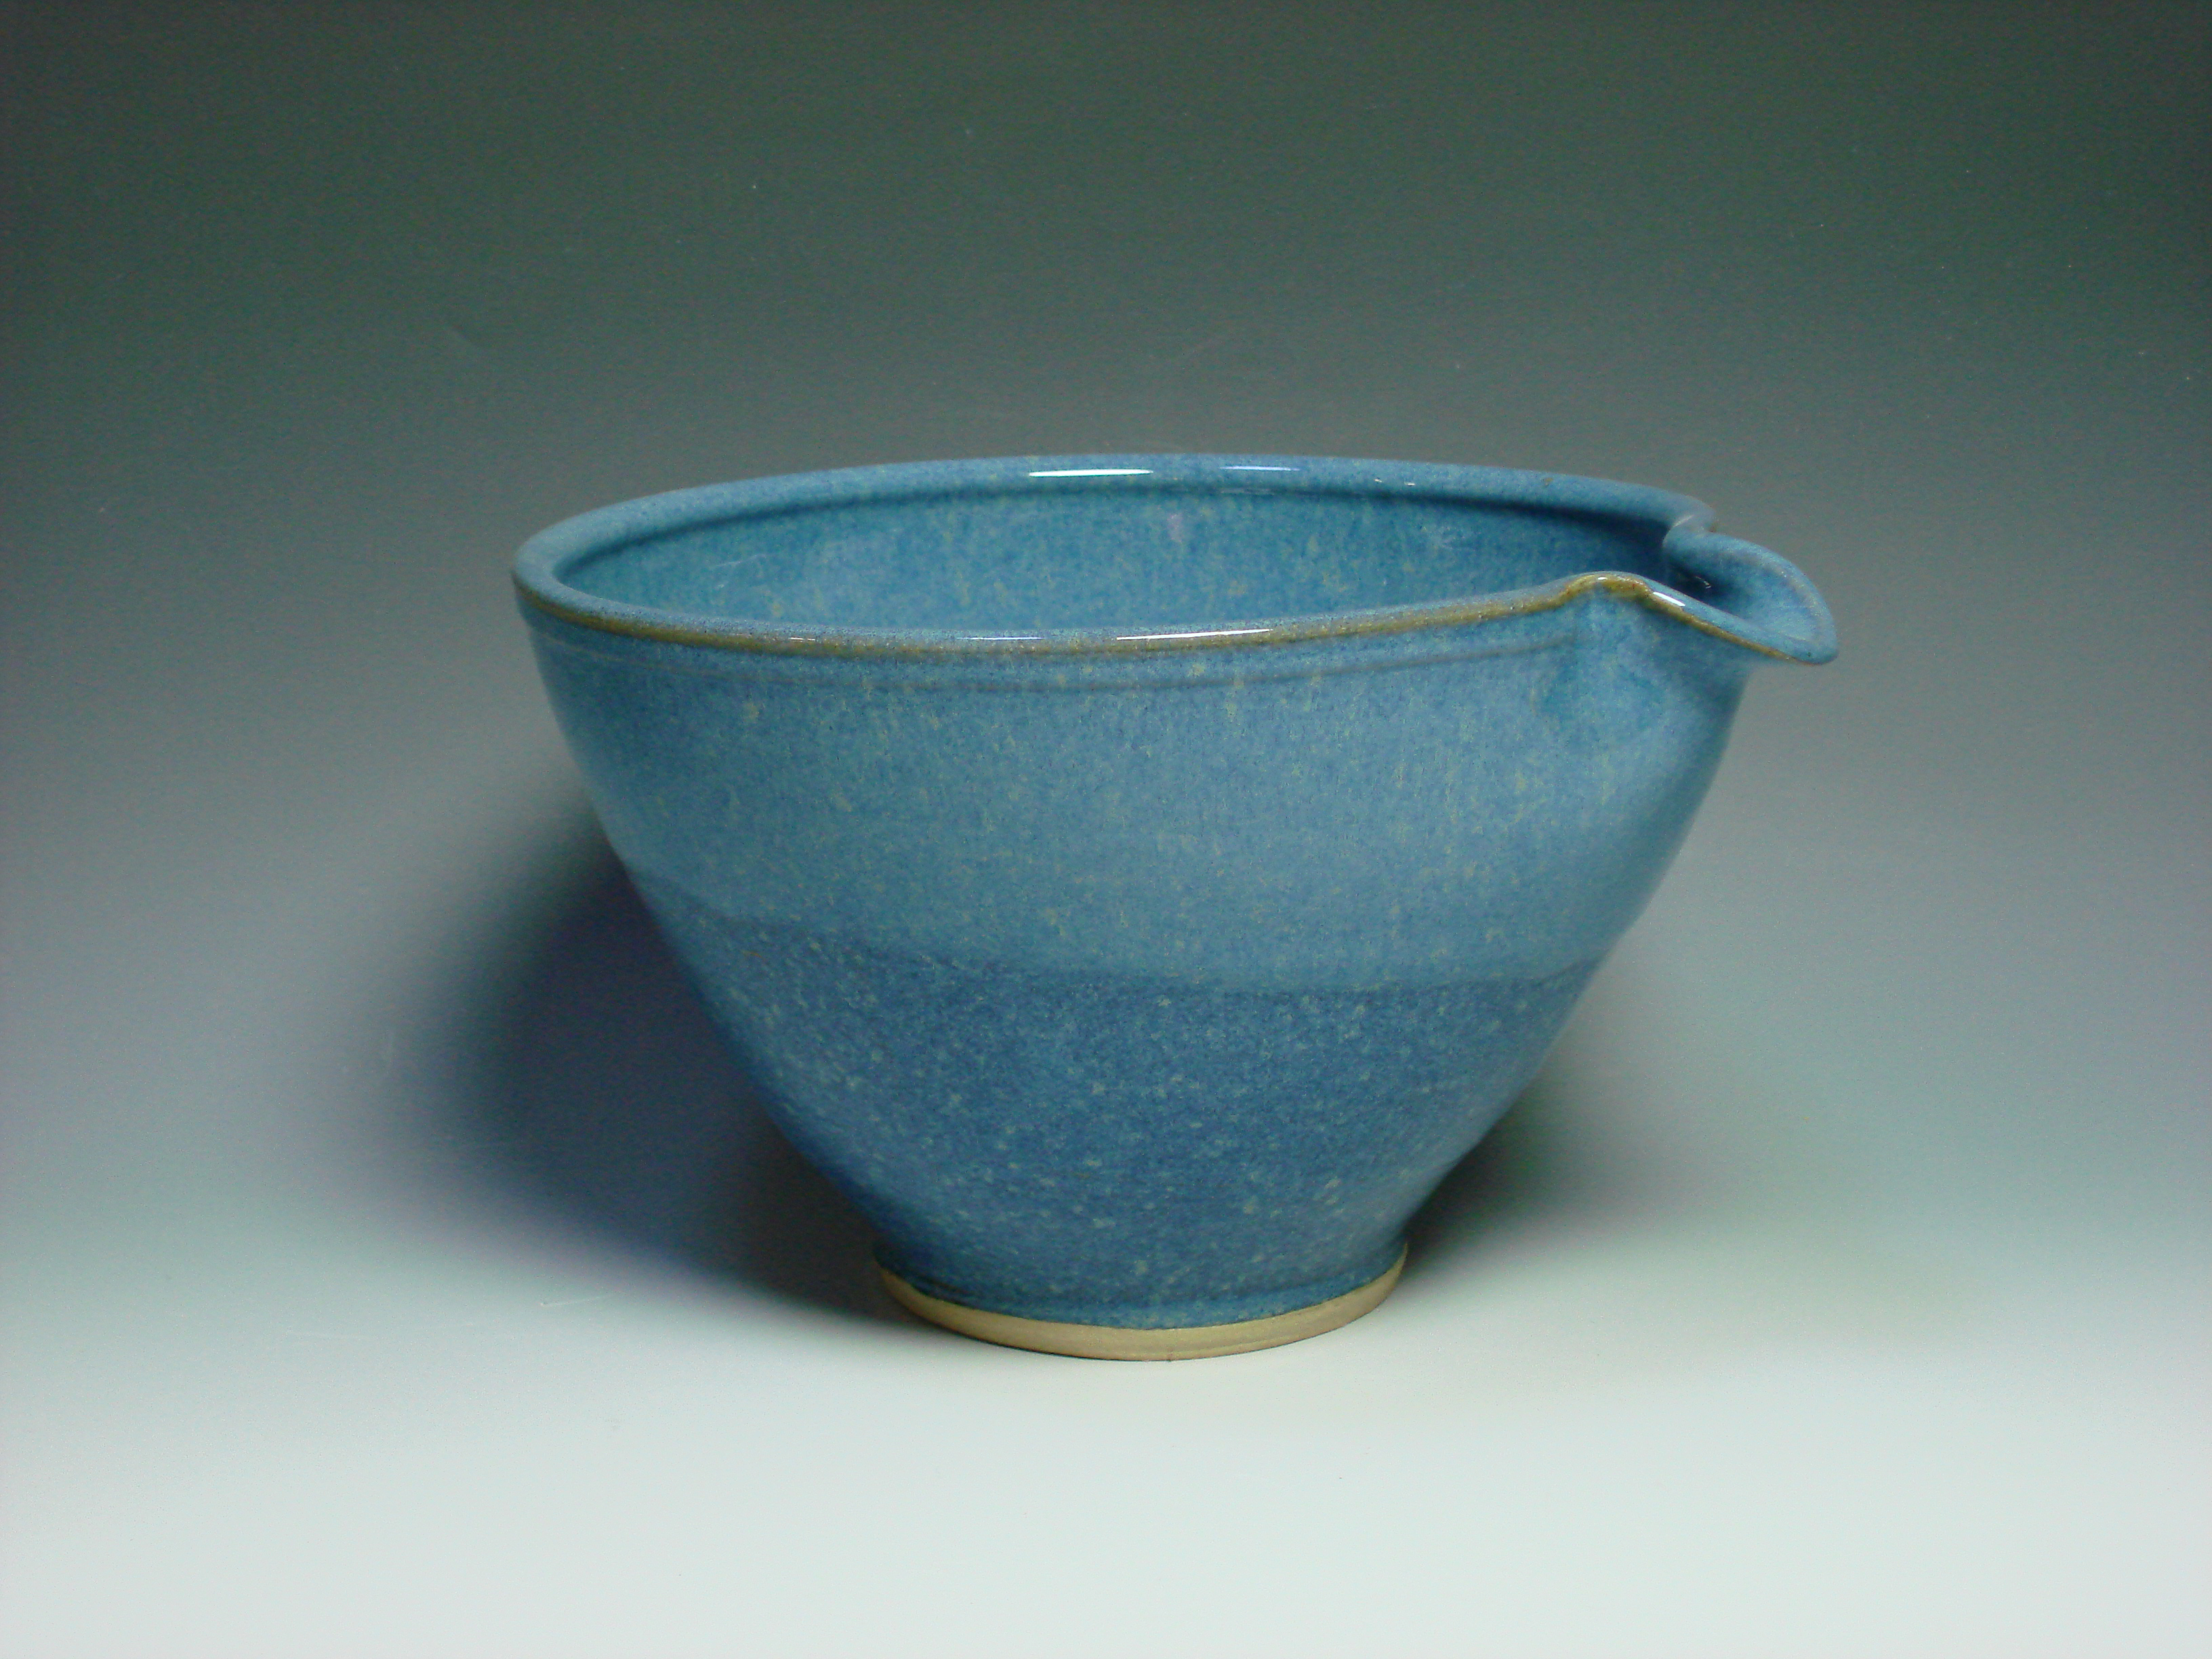 Blue ceramic mixing bowl